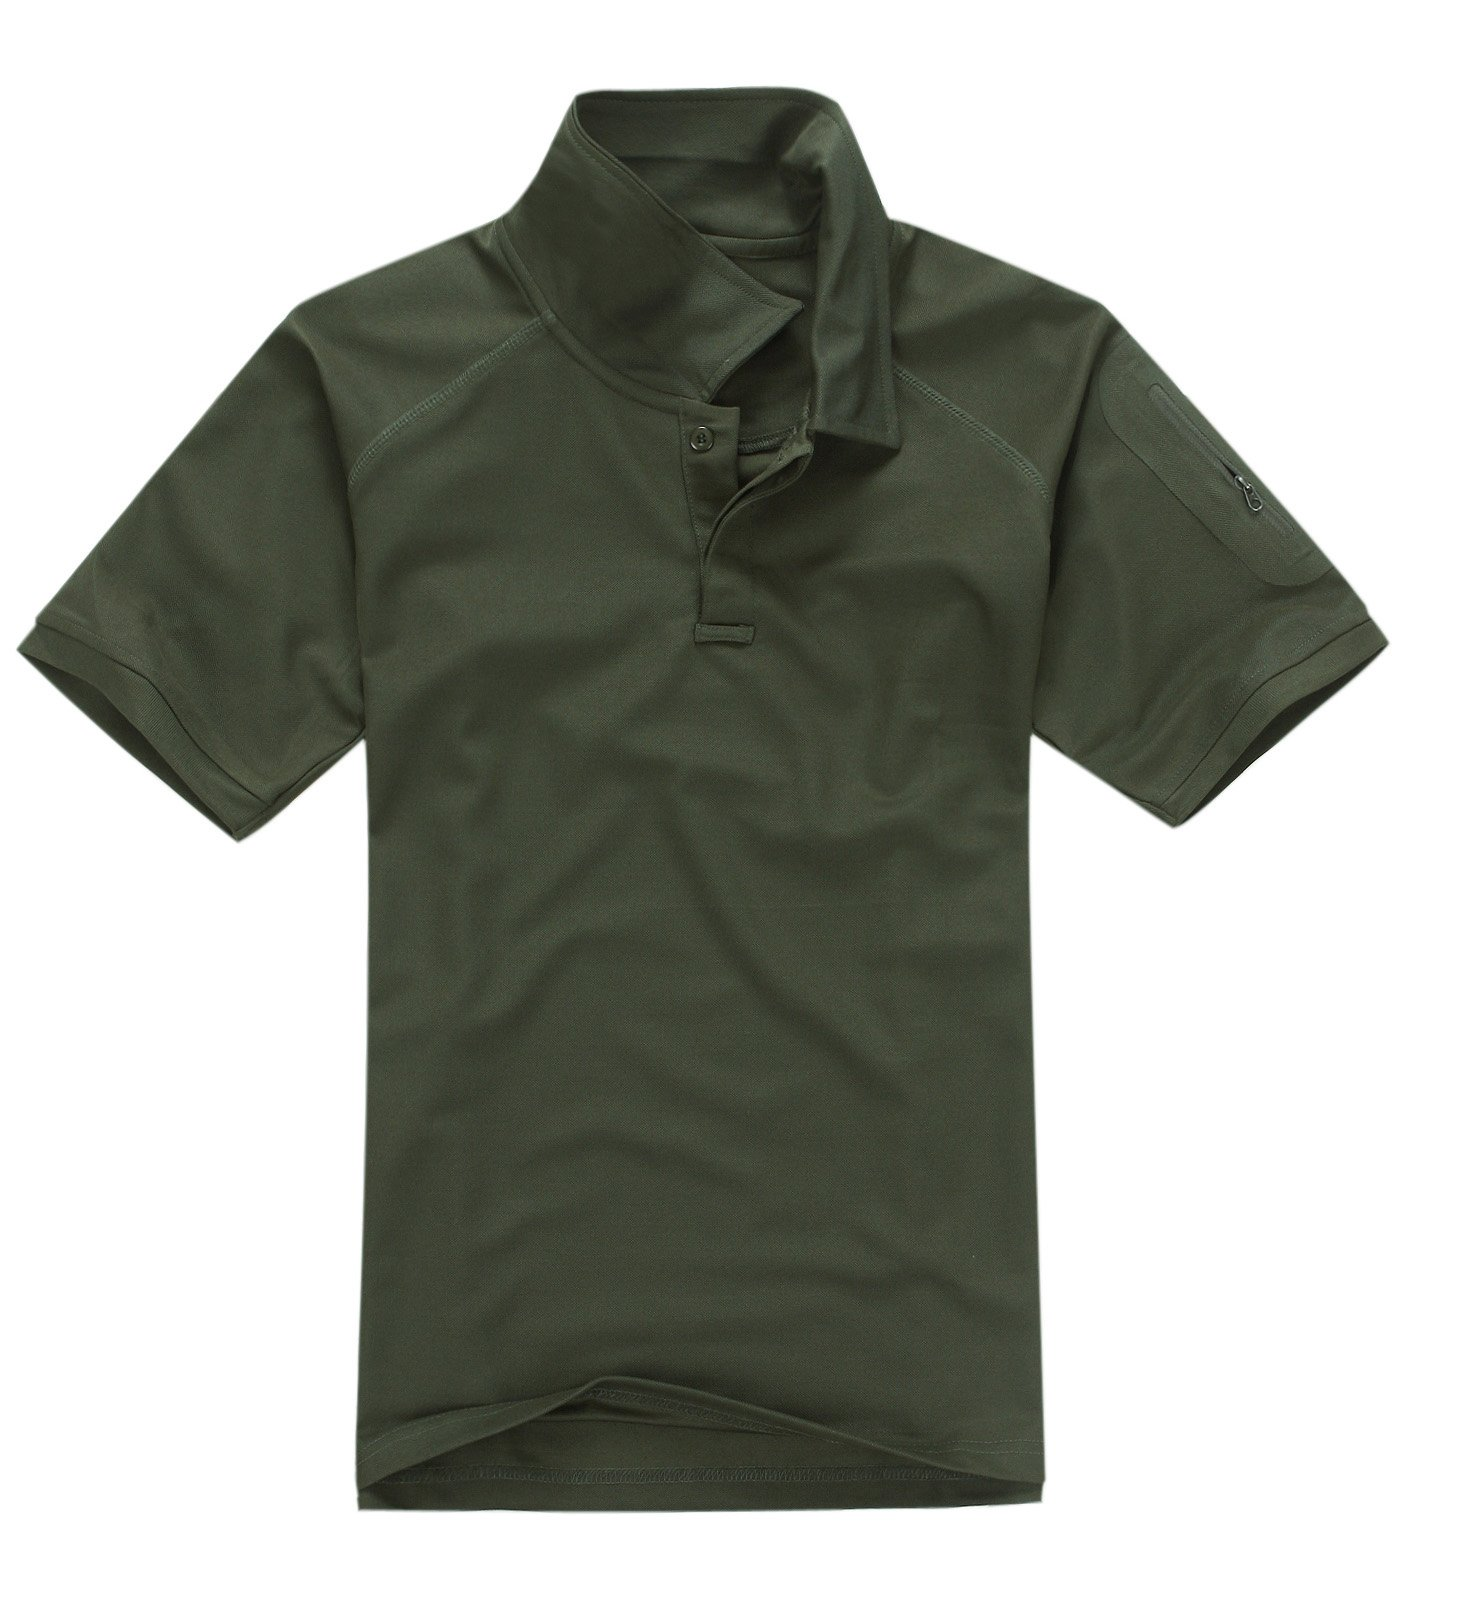 MAGCOMSEN Men's Polyester Lightweight Polo Shirt Short Sleeve Pullover,Army Green Color